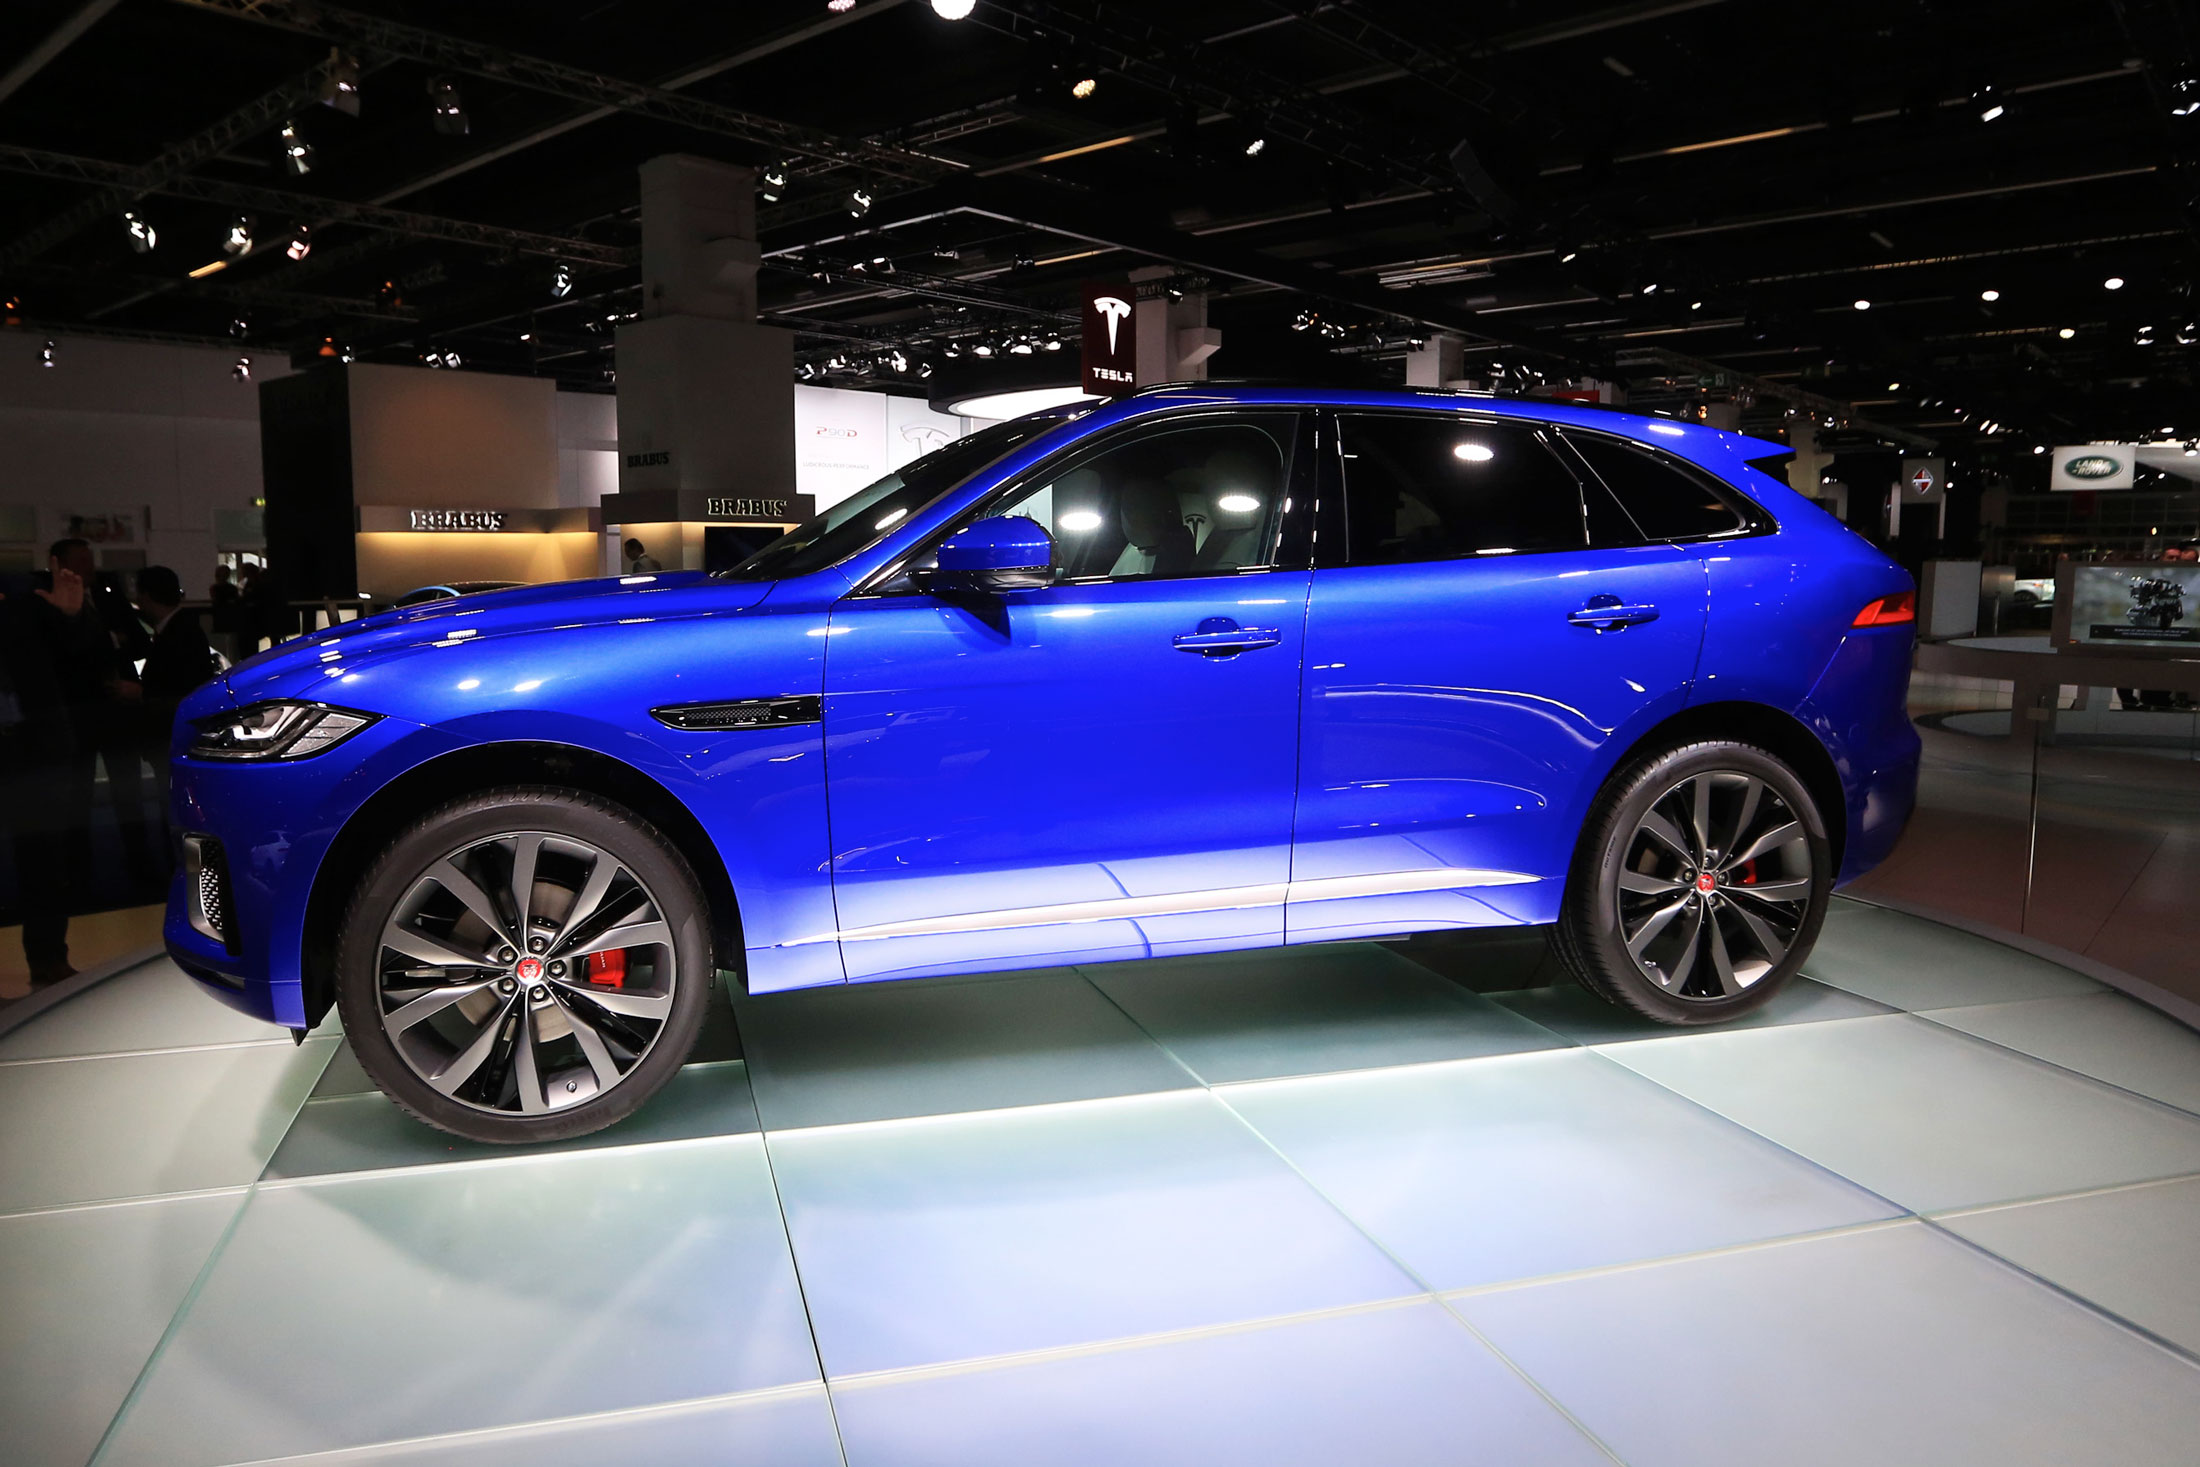 The Jaguar F-Pace SUV at the Frankfurt Motor Show.